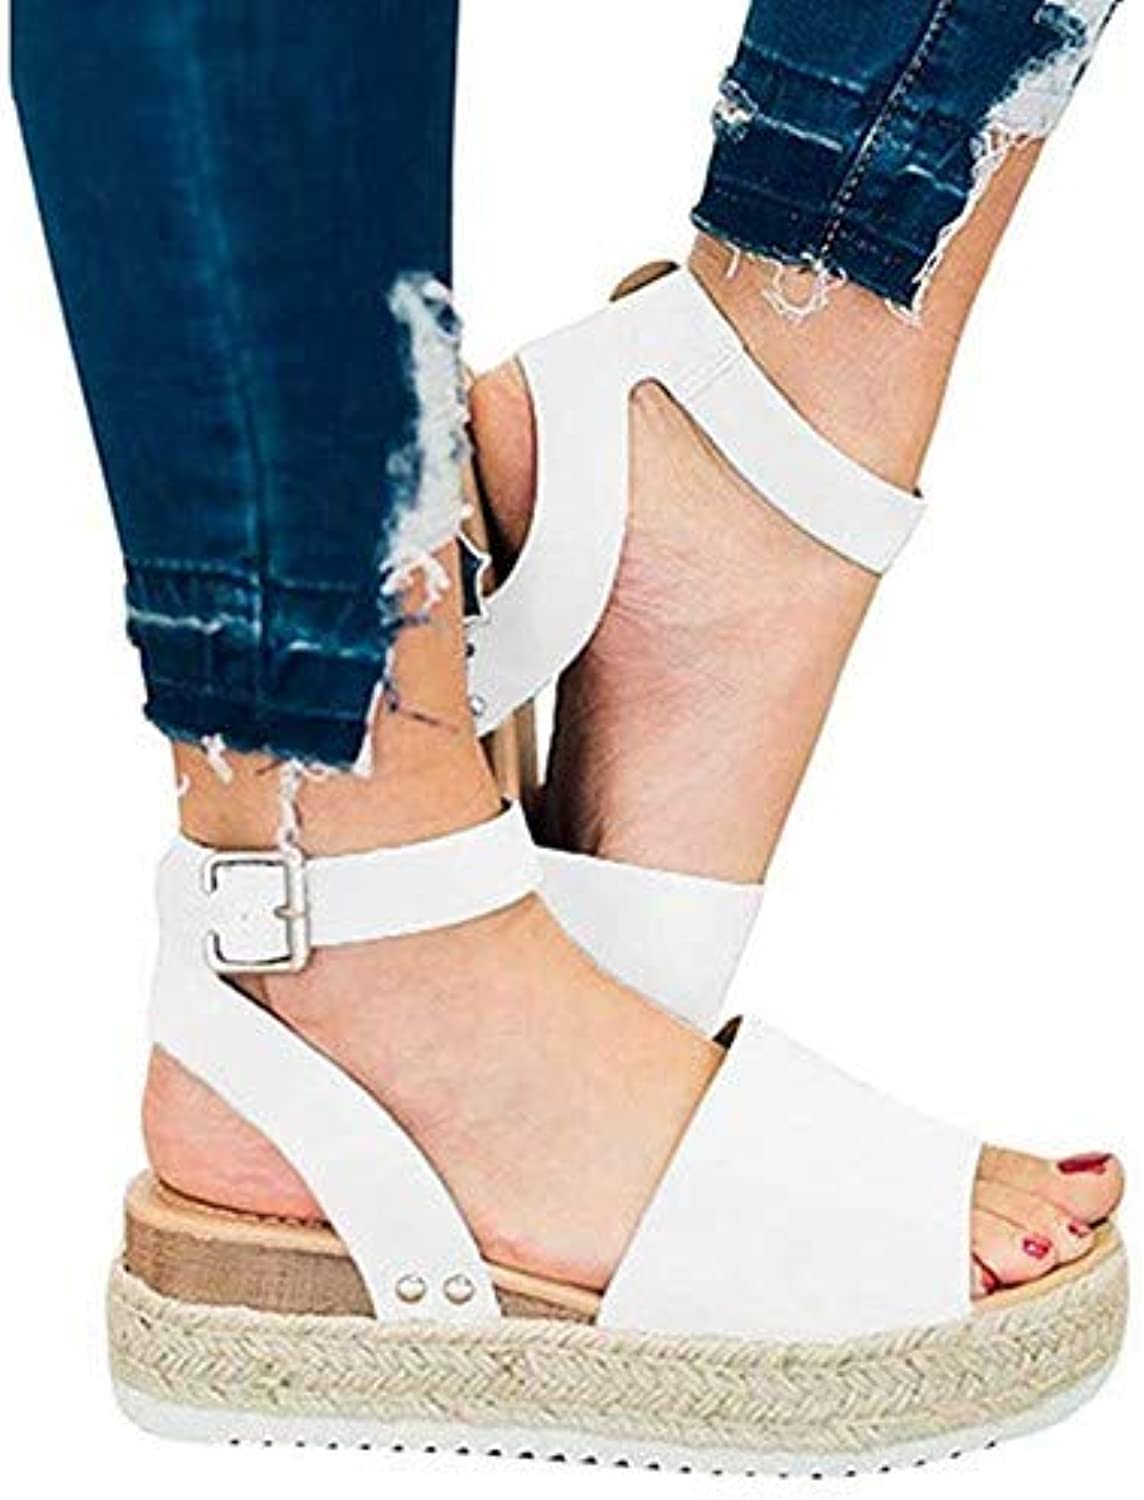 Sandals Wedges Summer Retro Peep Toe Buckle Ankle Strappy for Ladies Fashion Flat Lace Up 5 cm High Heels Leather Slingback shoes Casual Comfy White Espadrilles,White,40